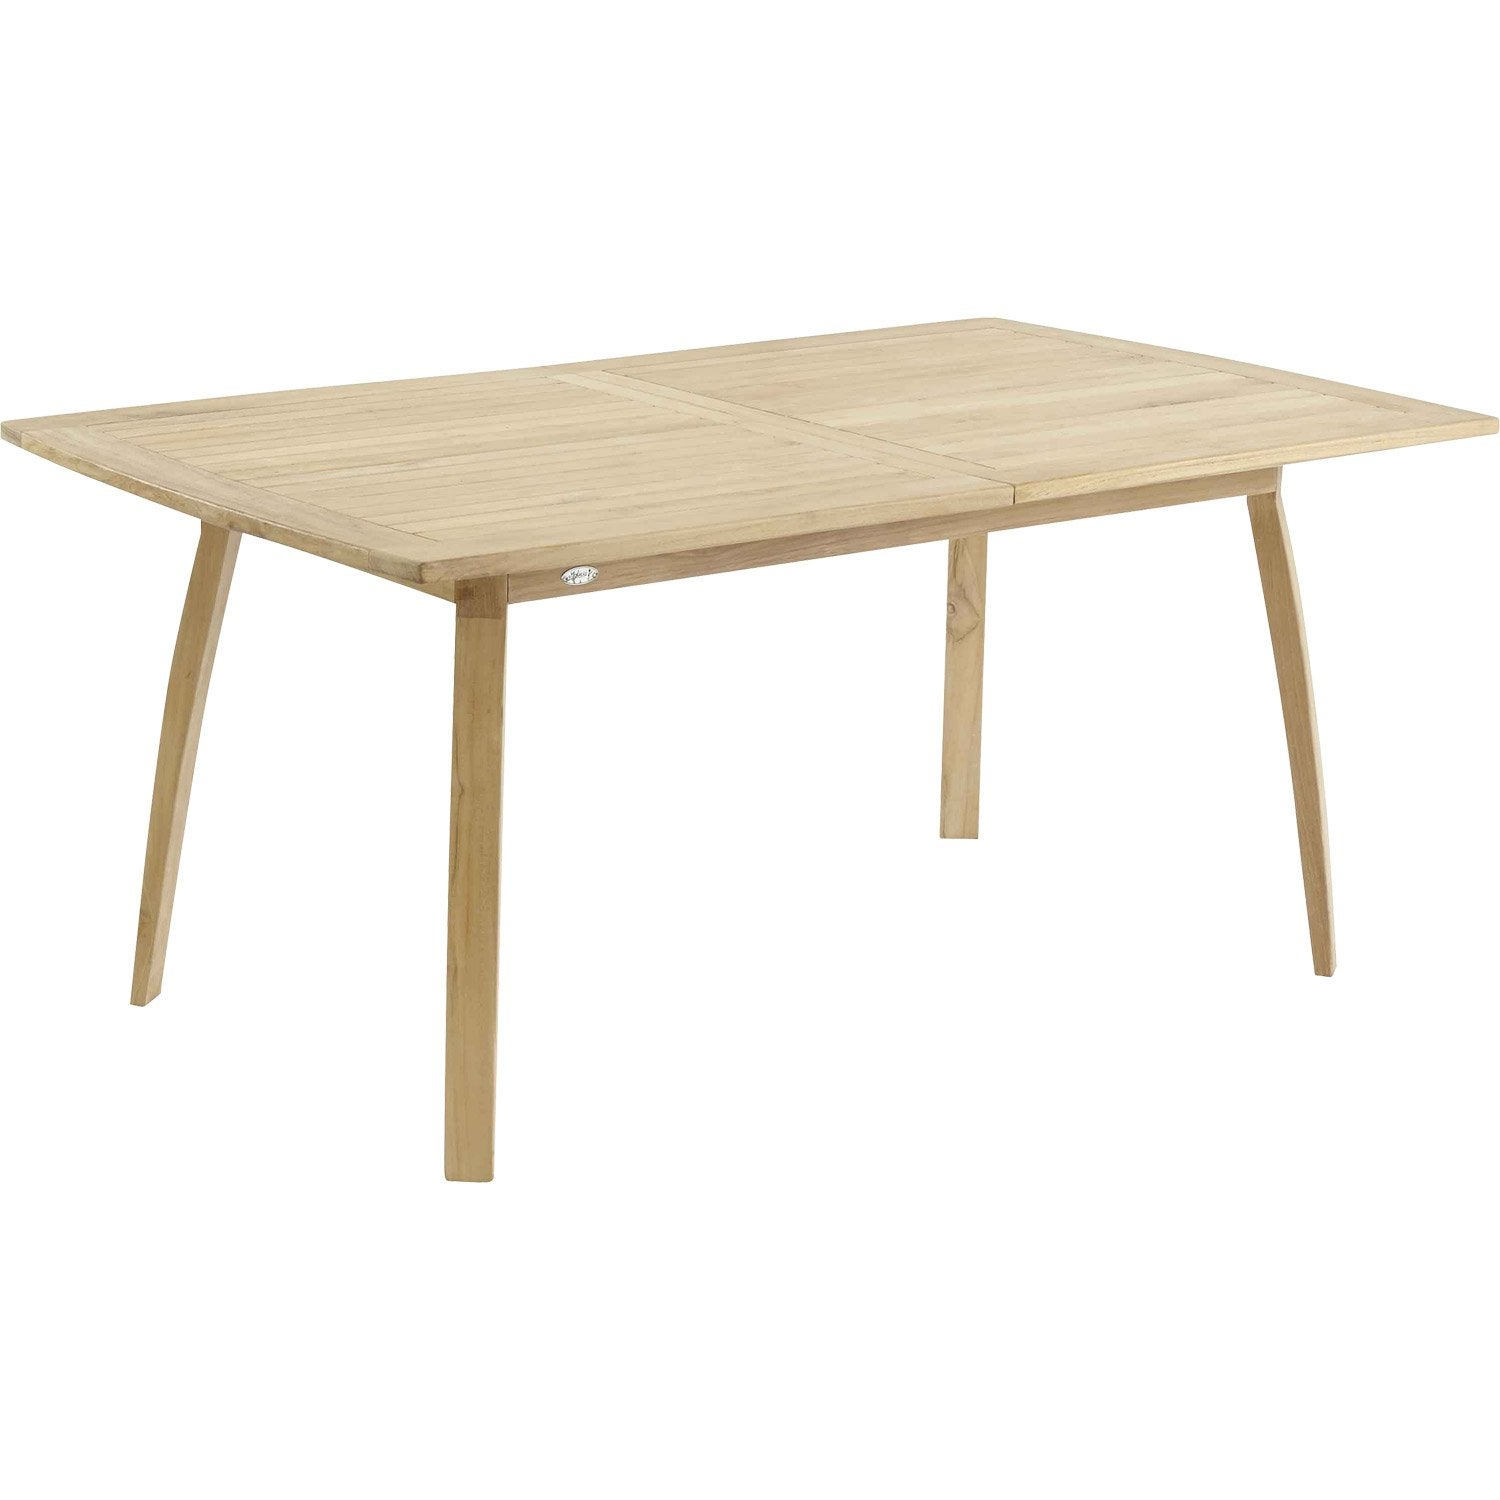 Table basse ovale leroy merlin - Leroy merlin table jardin ...